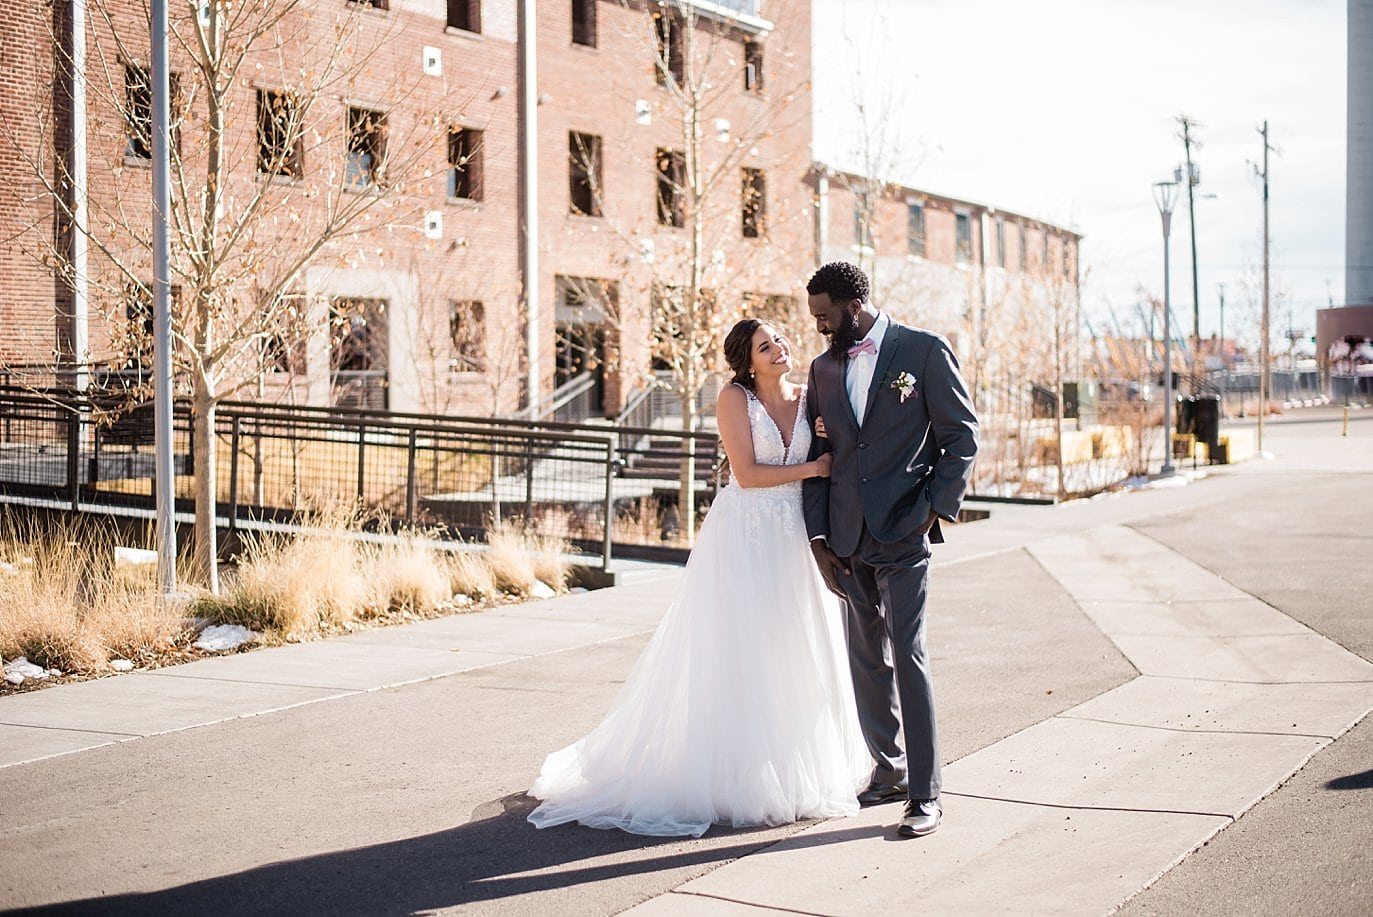 bride and groom in front of STEAM on the Platte event building at Shyft Denver wedding by Boulder Wedding photographer Jennie Crate photographer